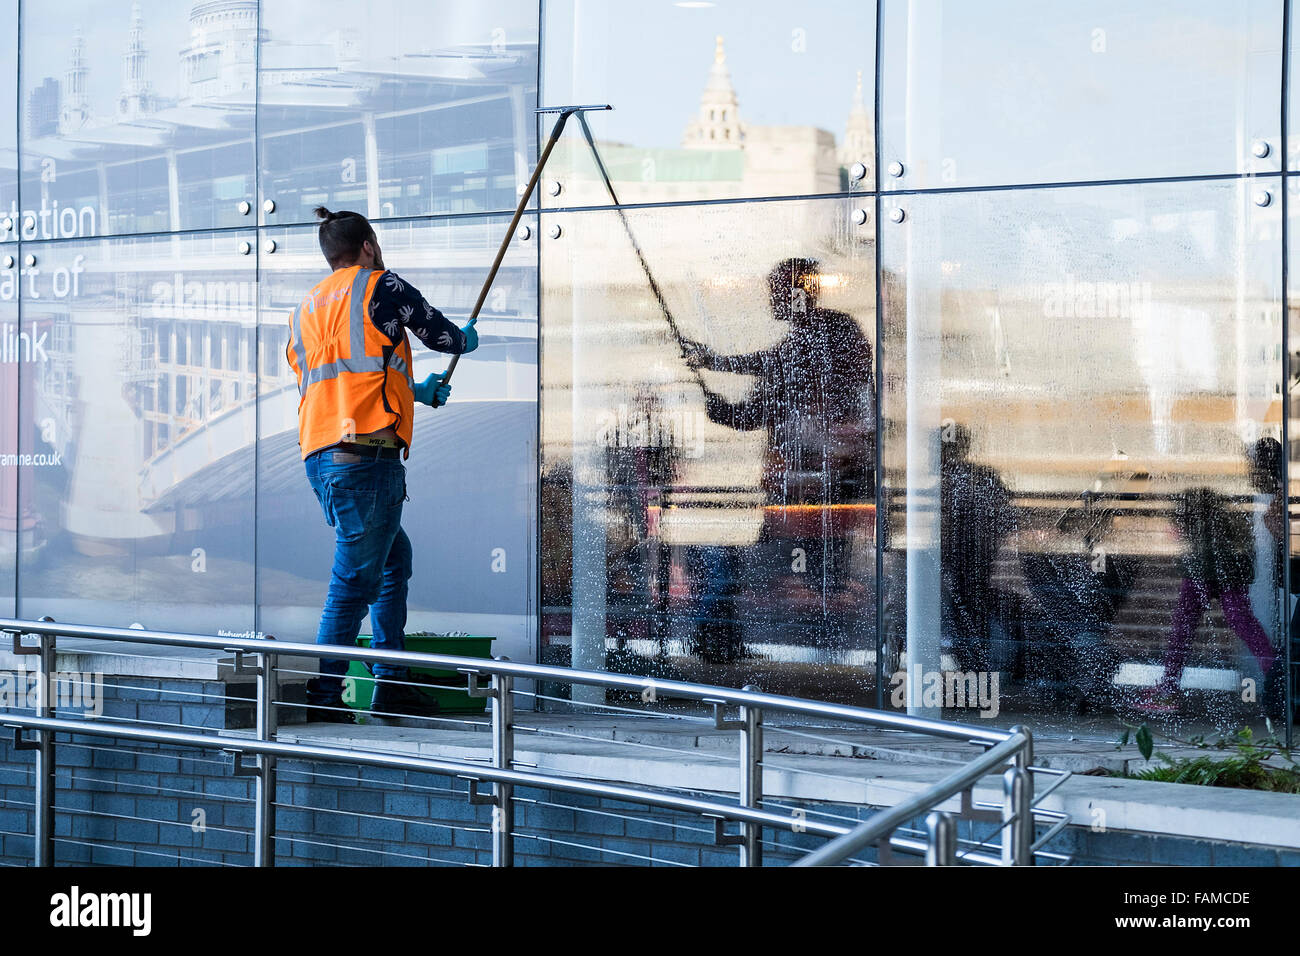 Window cleaner at work - a worker cleaning the windows of Blackfriars Station on the South Bank in London. - Stock Image